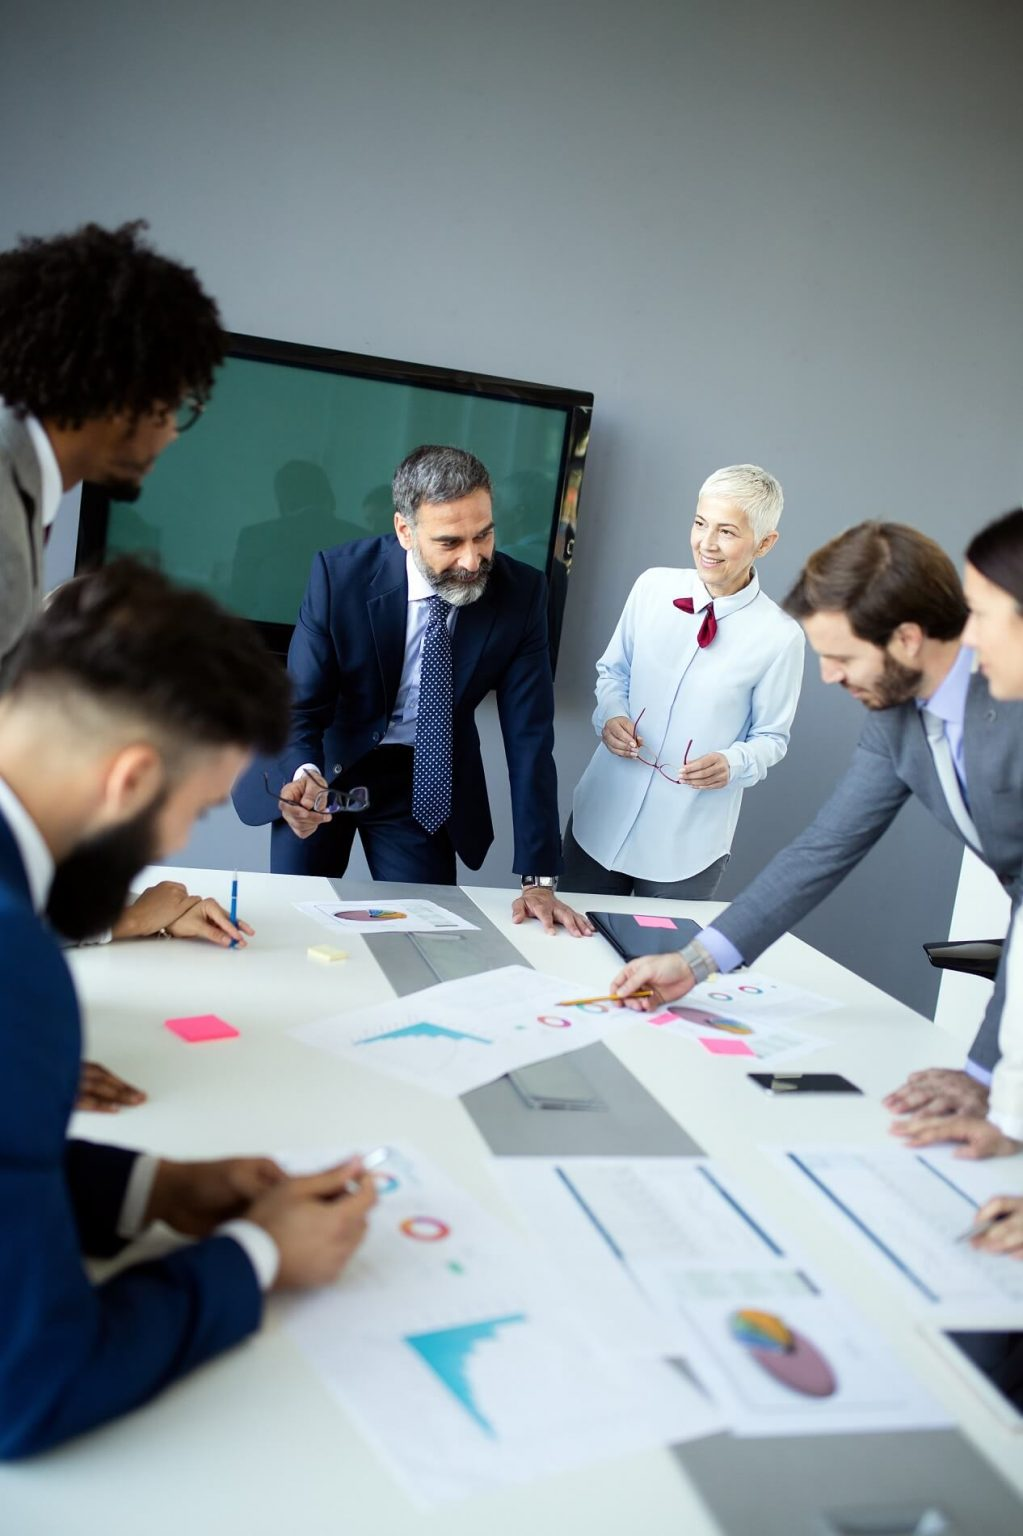 Insurance Estate plan group-of-happy-business-people-working-in-a-meeting